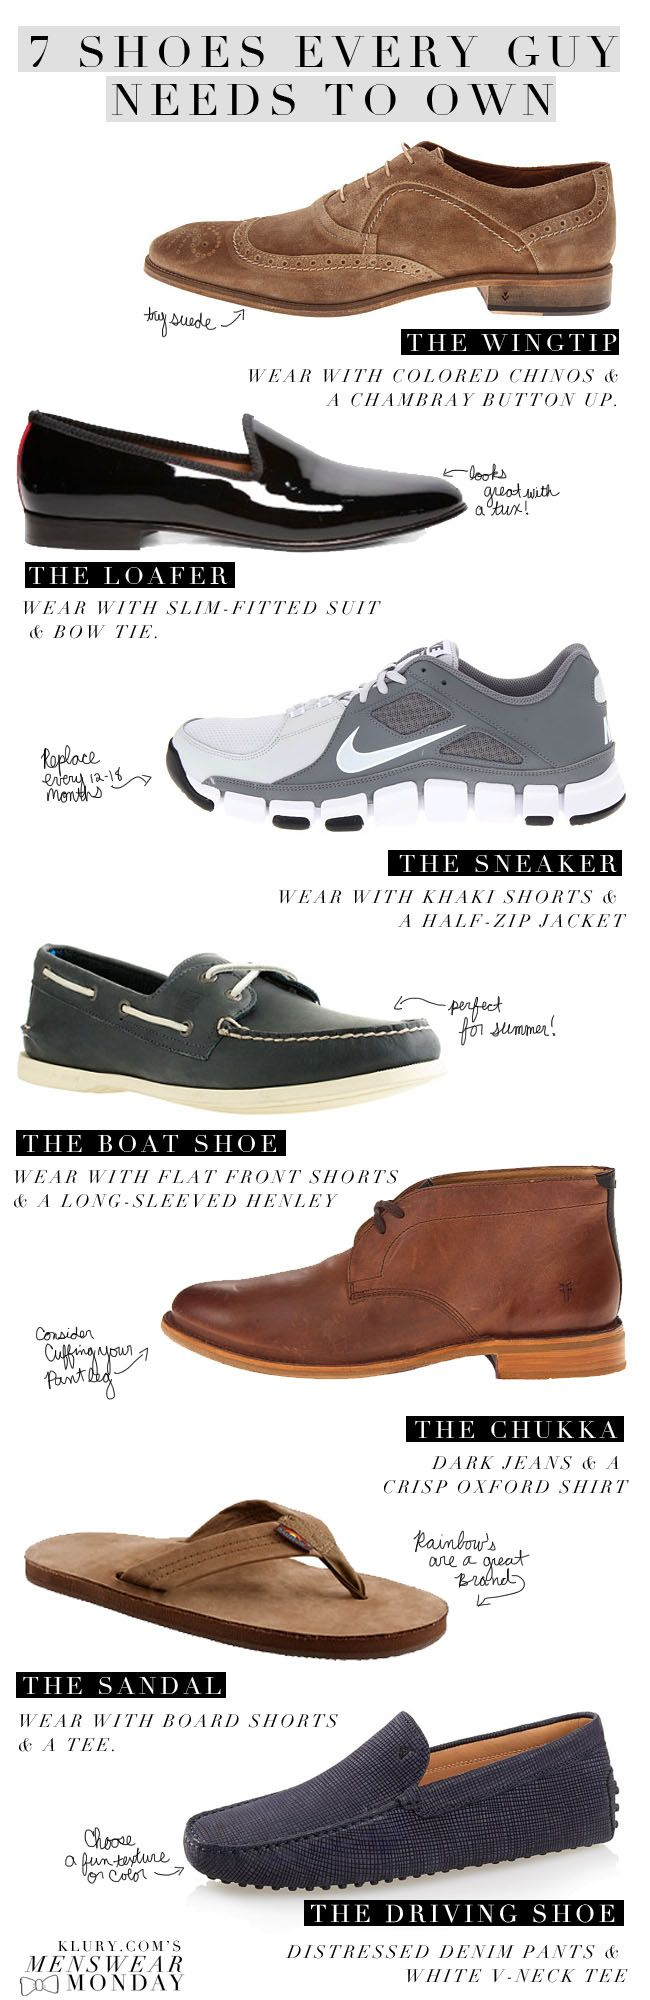 7 Shoe's every guy needs to own